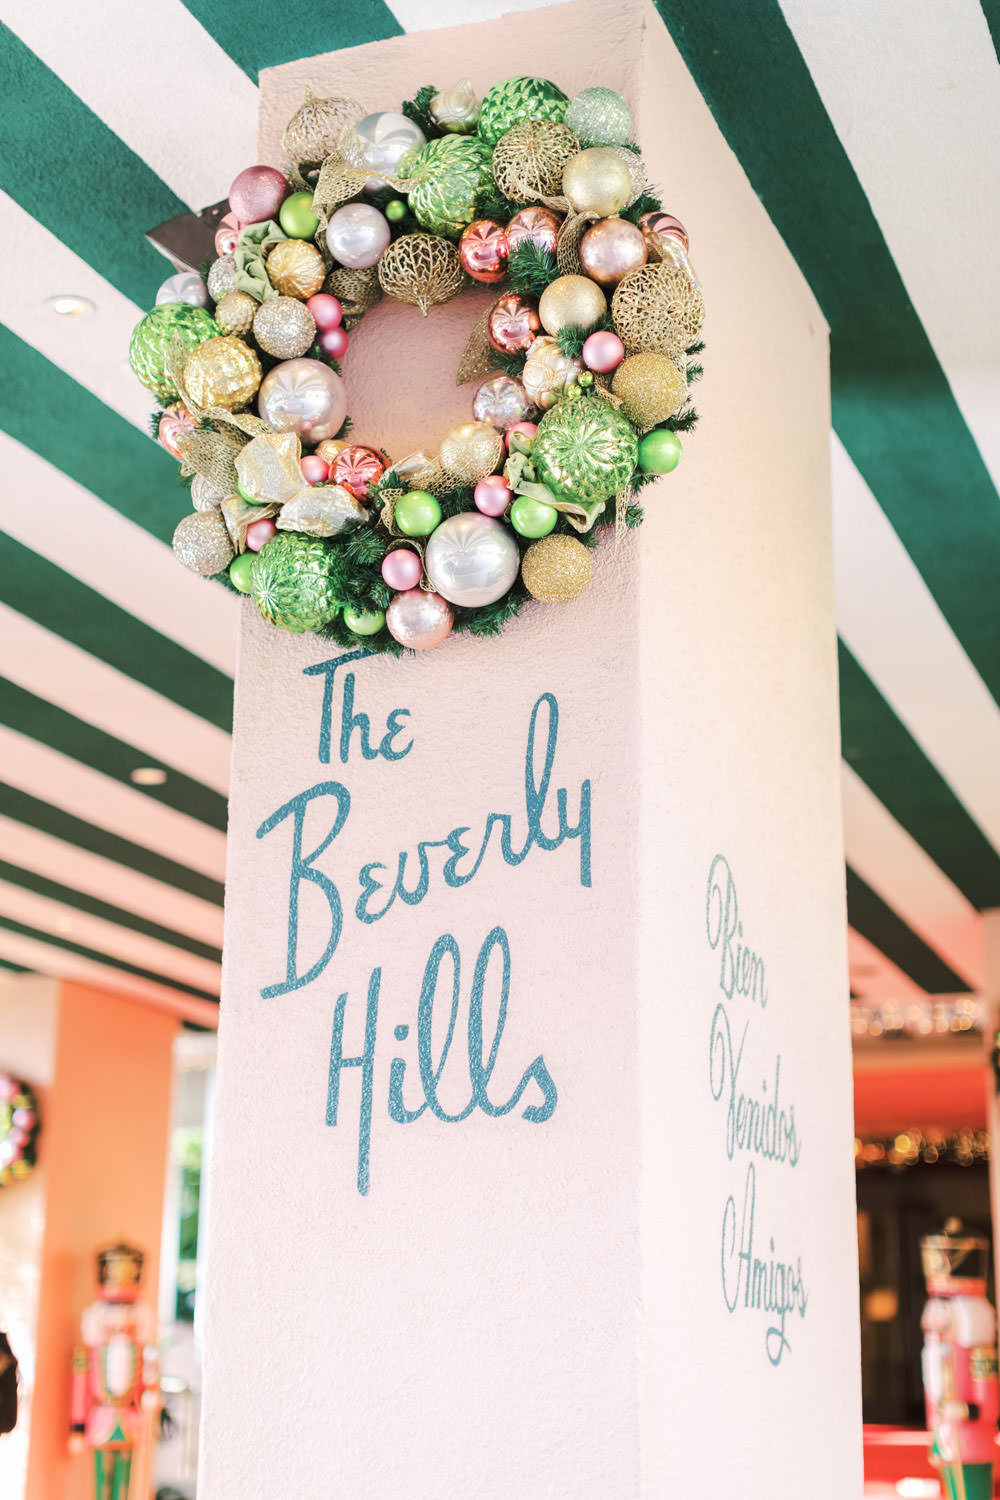 Chic Beverly Hills Hotel Bridal Shower in Los Angeles during Christmas decorations, Cavin Elizabeth Photography